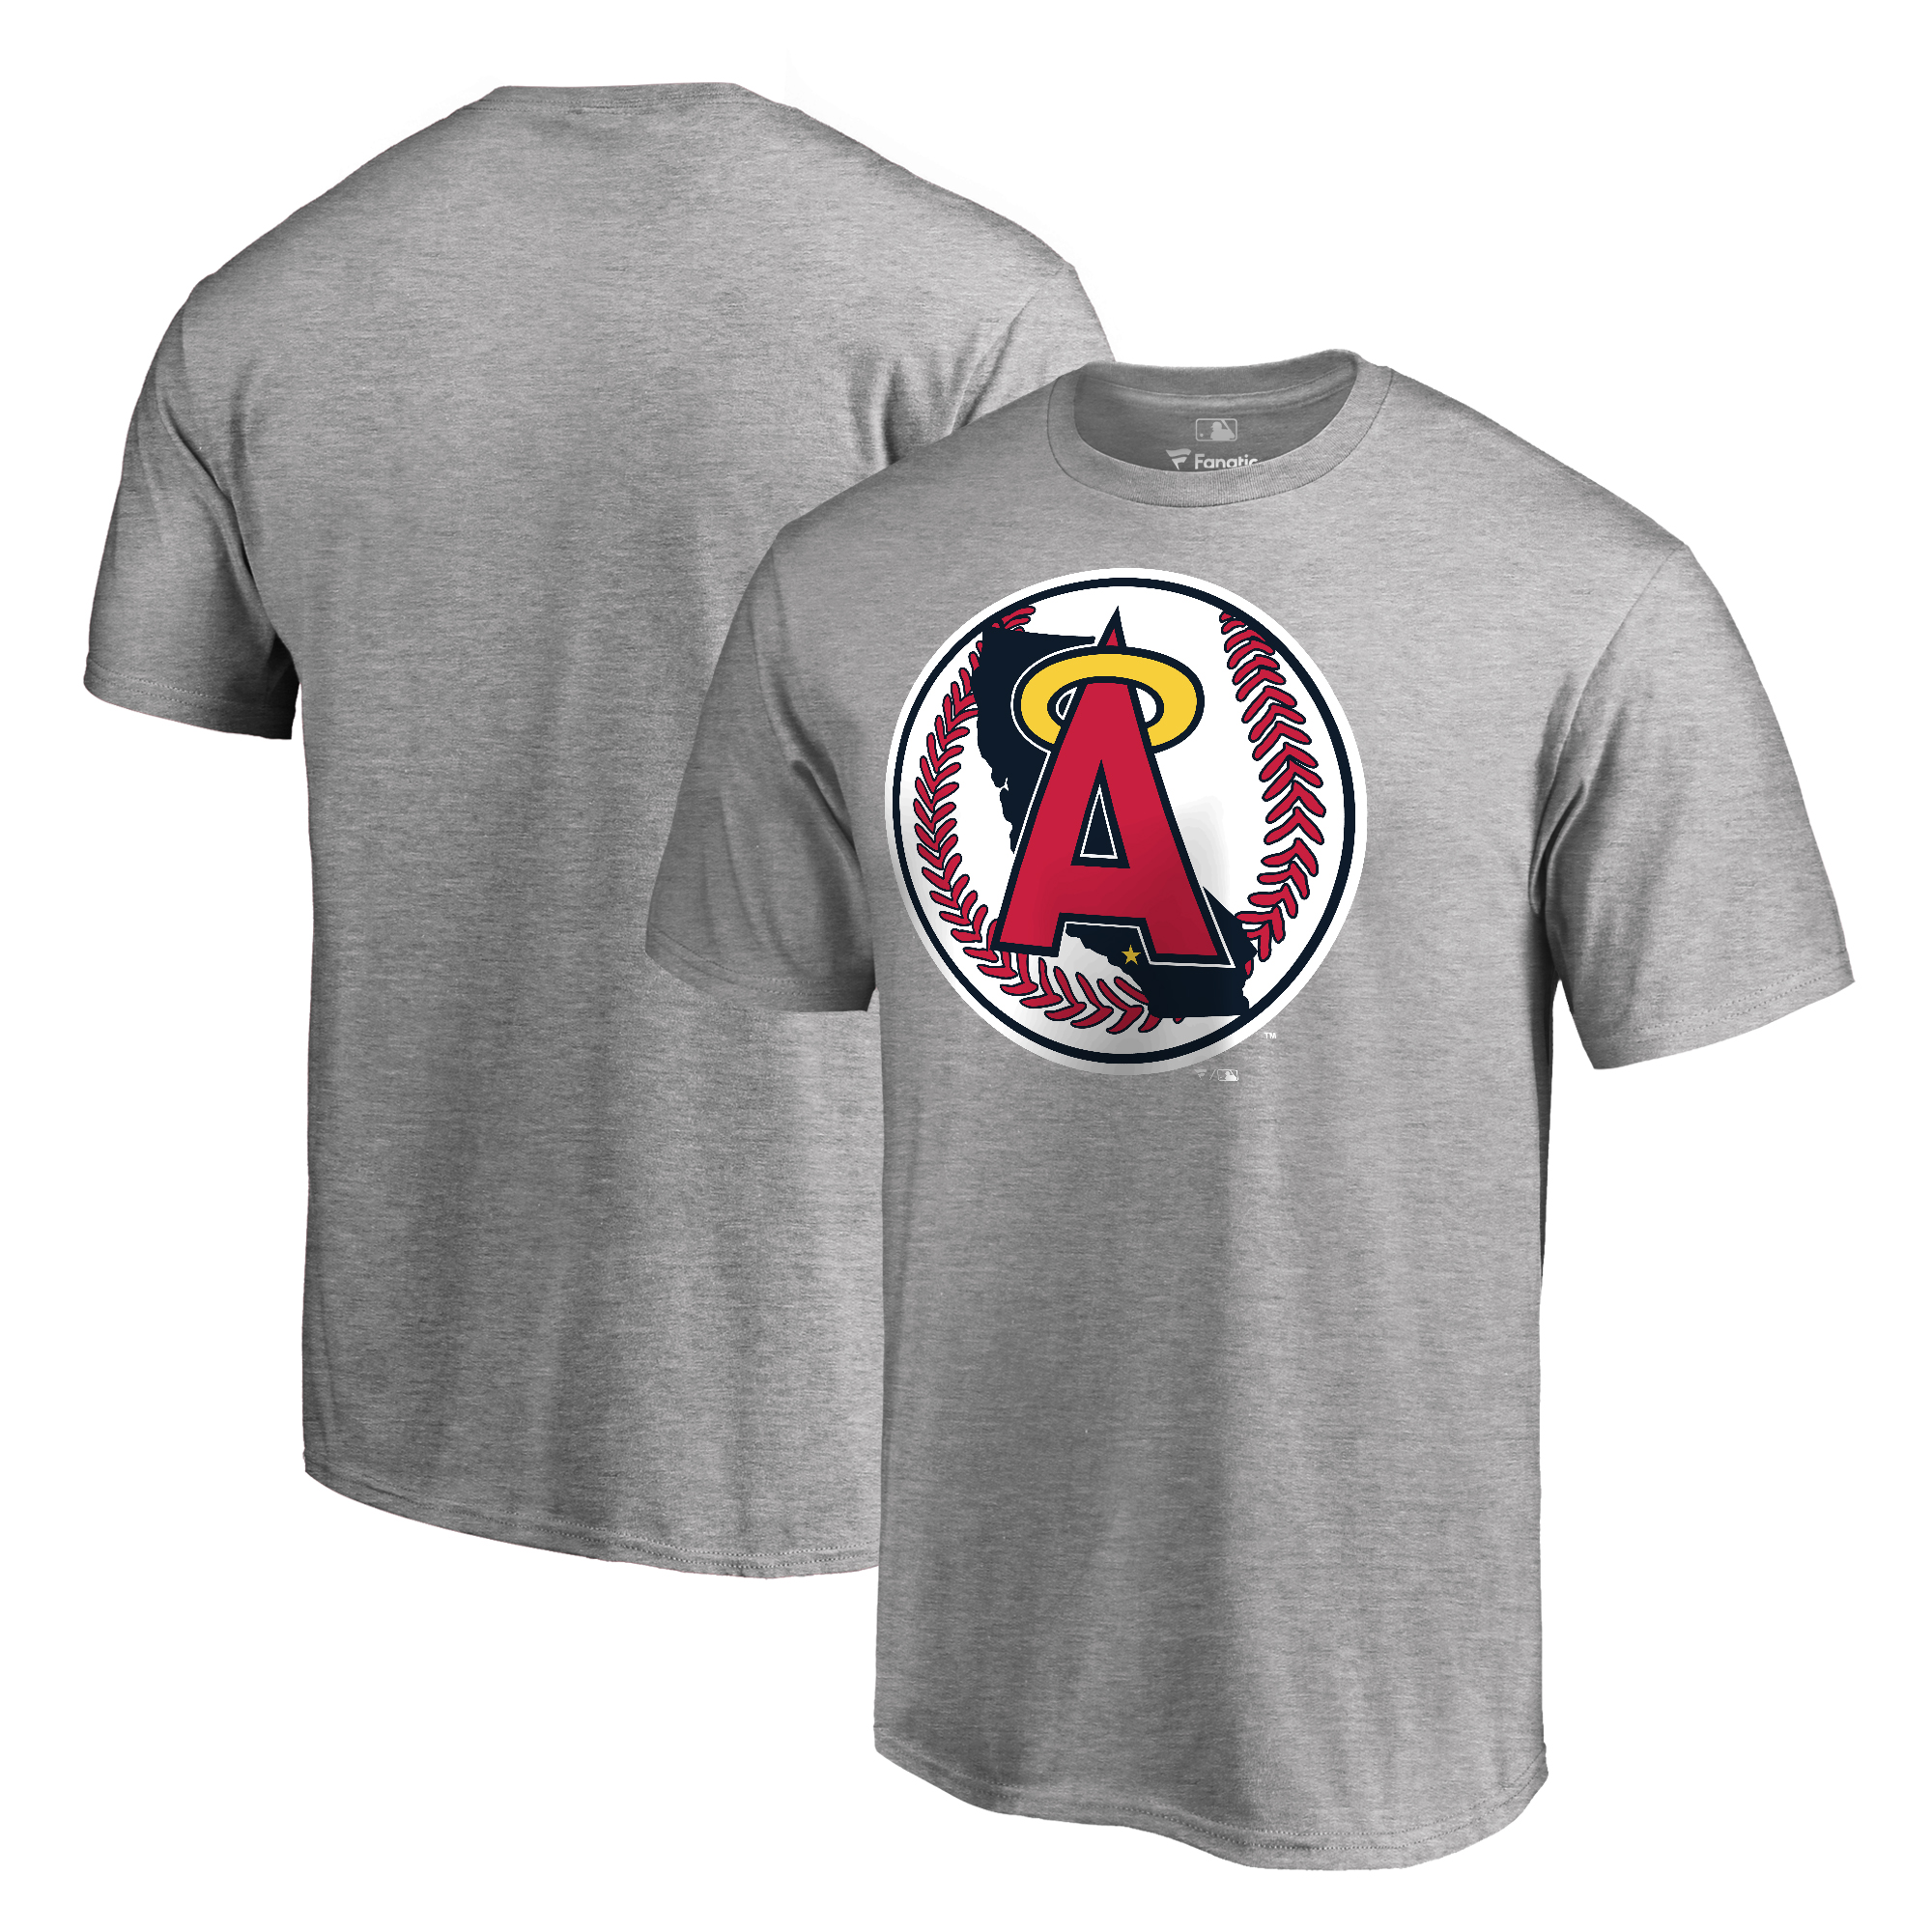 Los Angeles Angels Fanatics Branded Cooperstown Collection Forbes T-Shirt - Ash